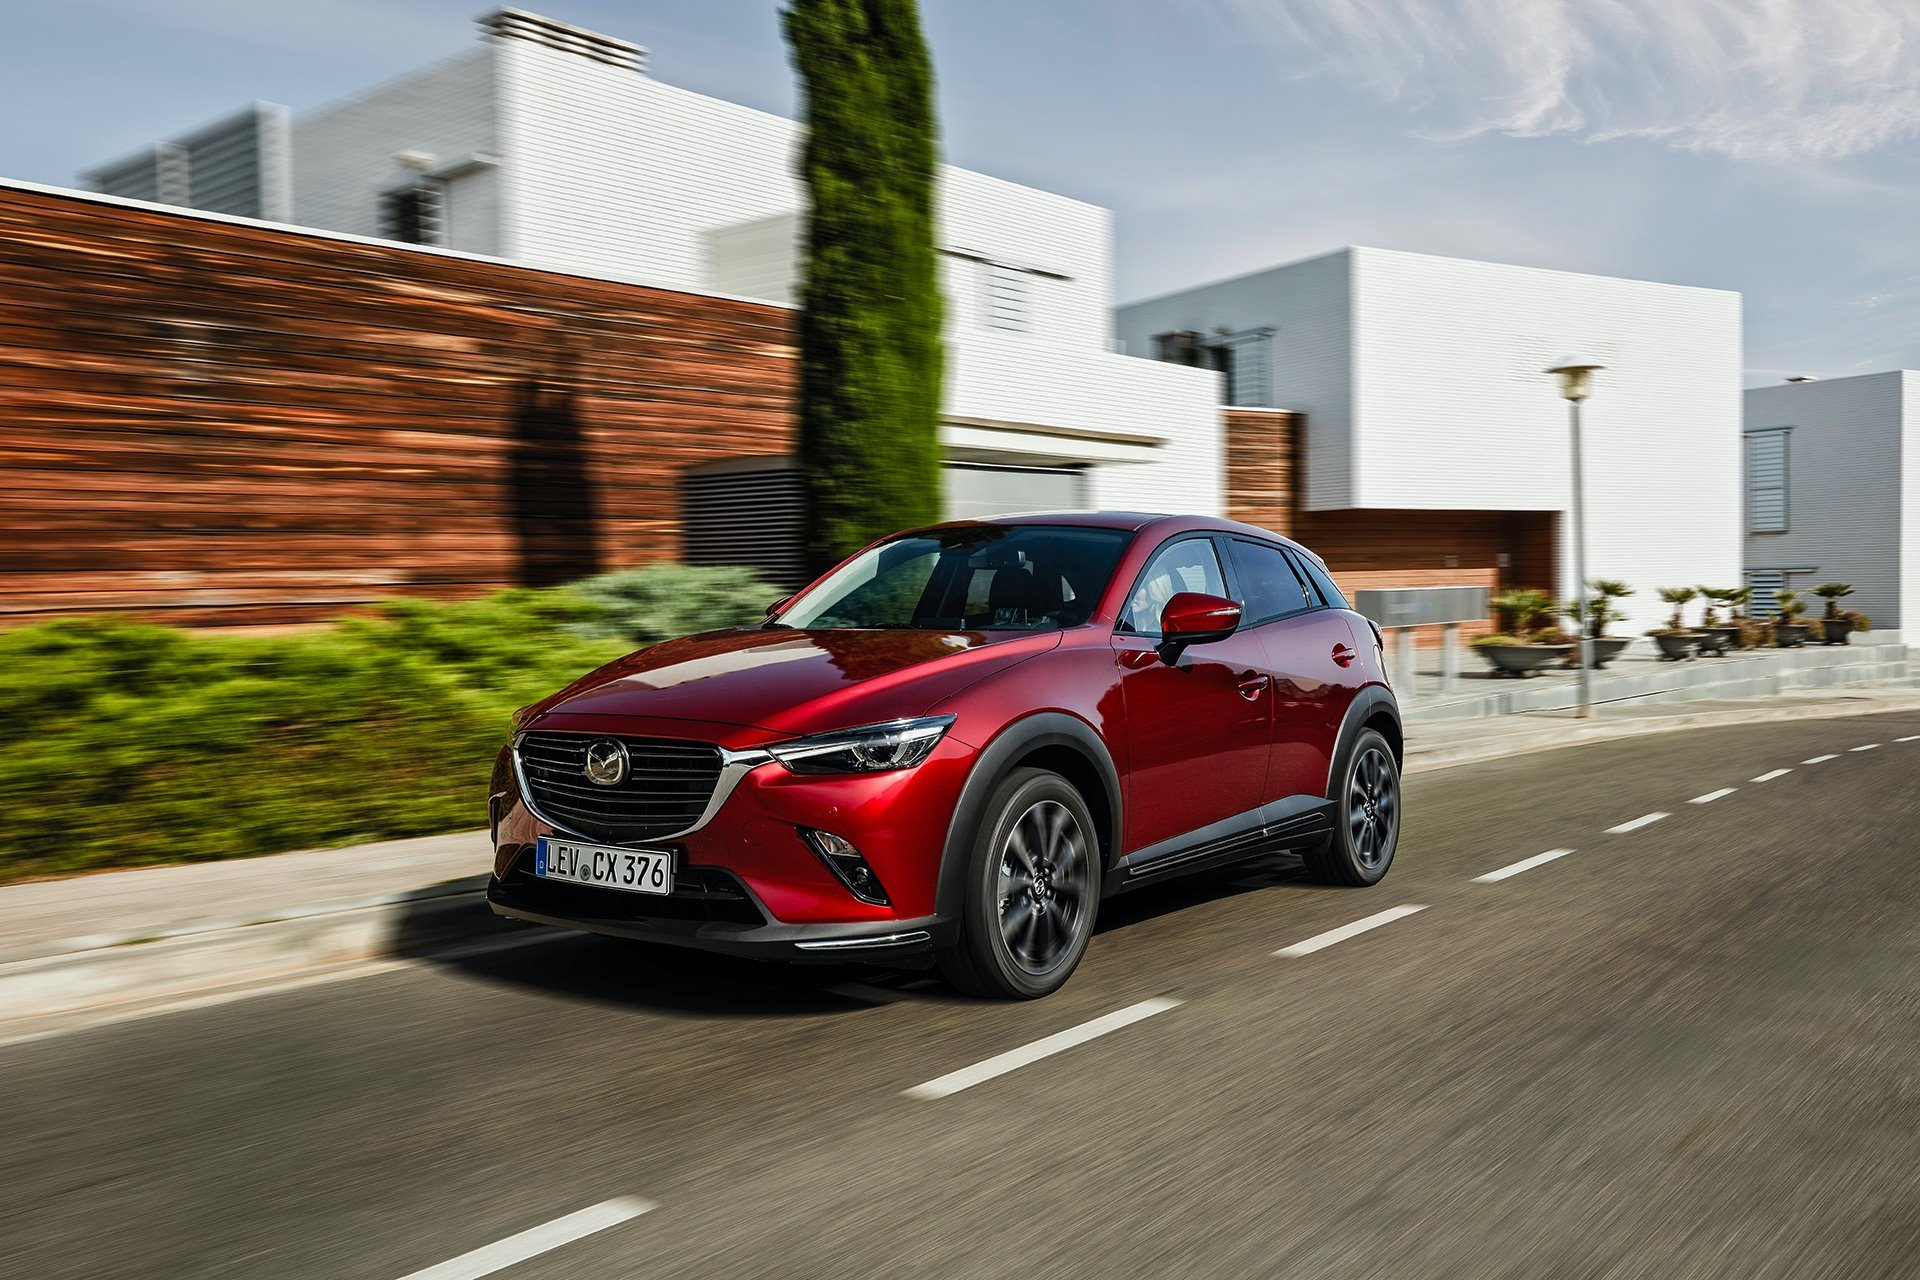 New 2019 Mazda-CX-5 Grand Touring Reserve CX-5 Grand Touring Reserve for sale $34,870 at M and V Leasing in Brooklyn NY 11223 1